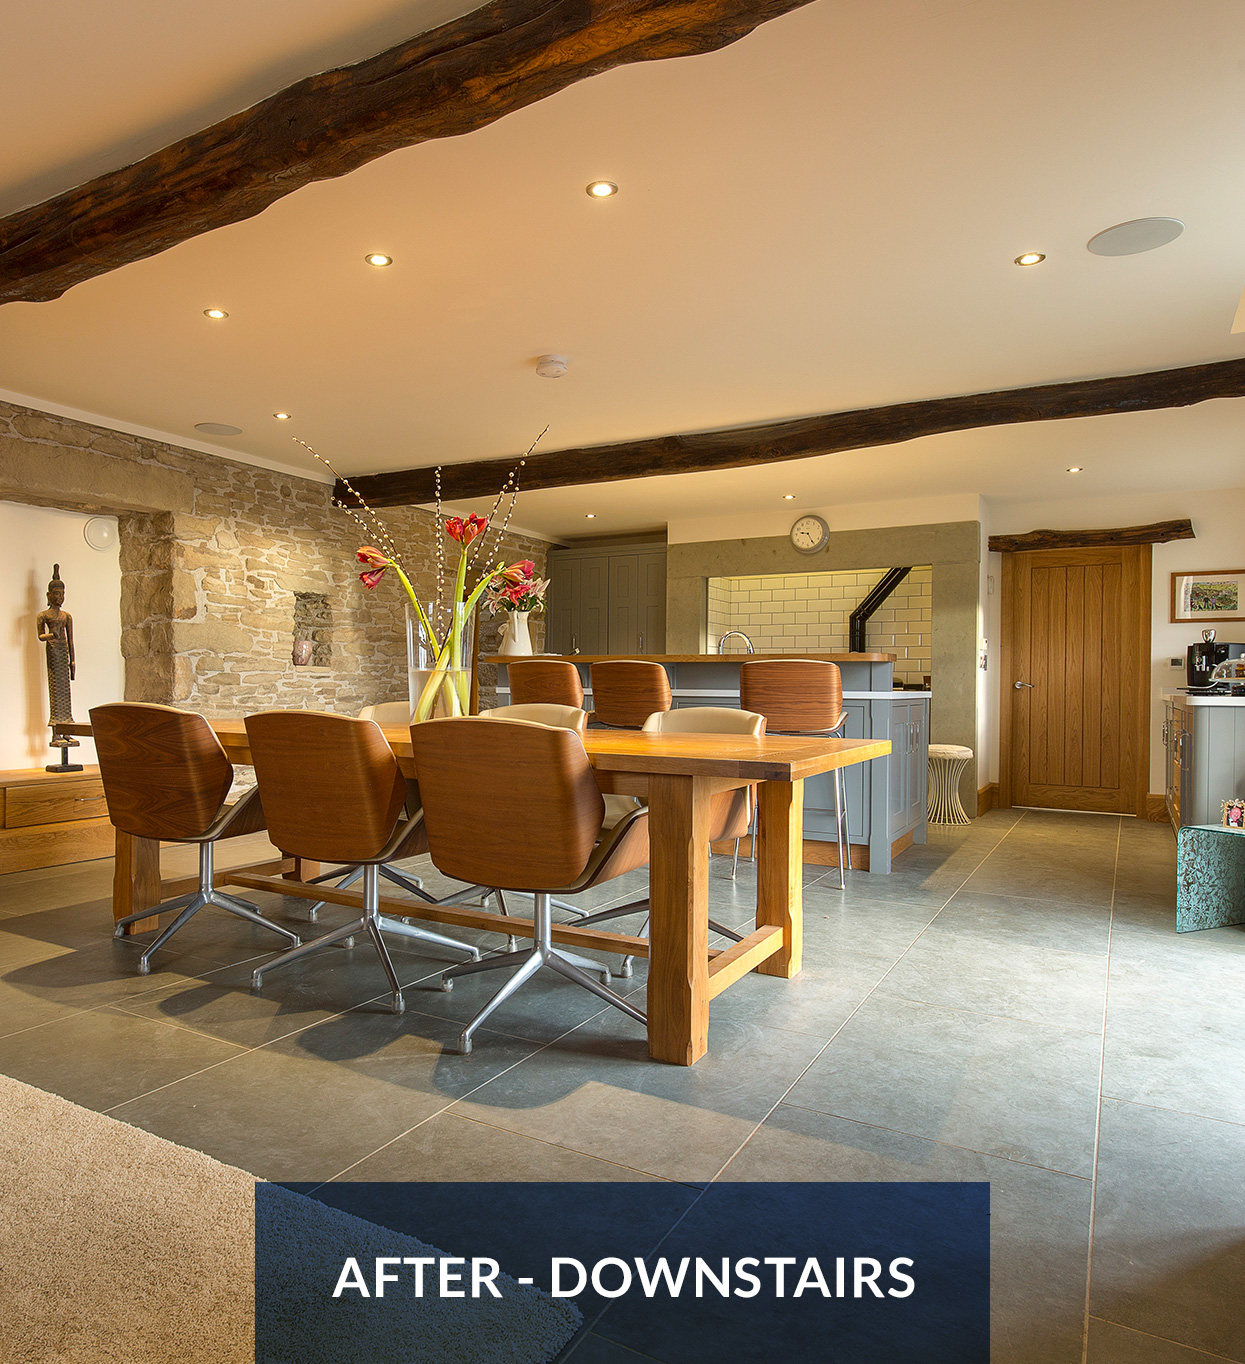 Higher Blaitwaite Barn - Downstairs